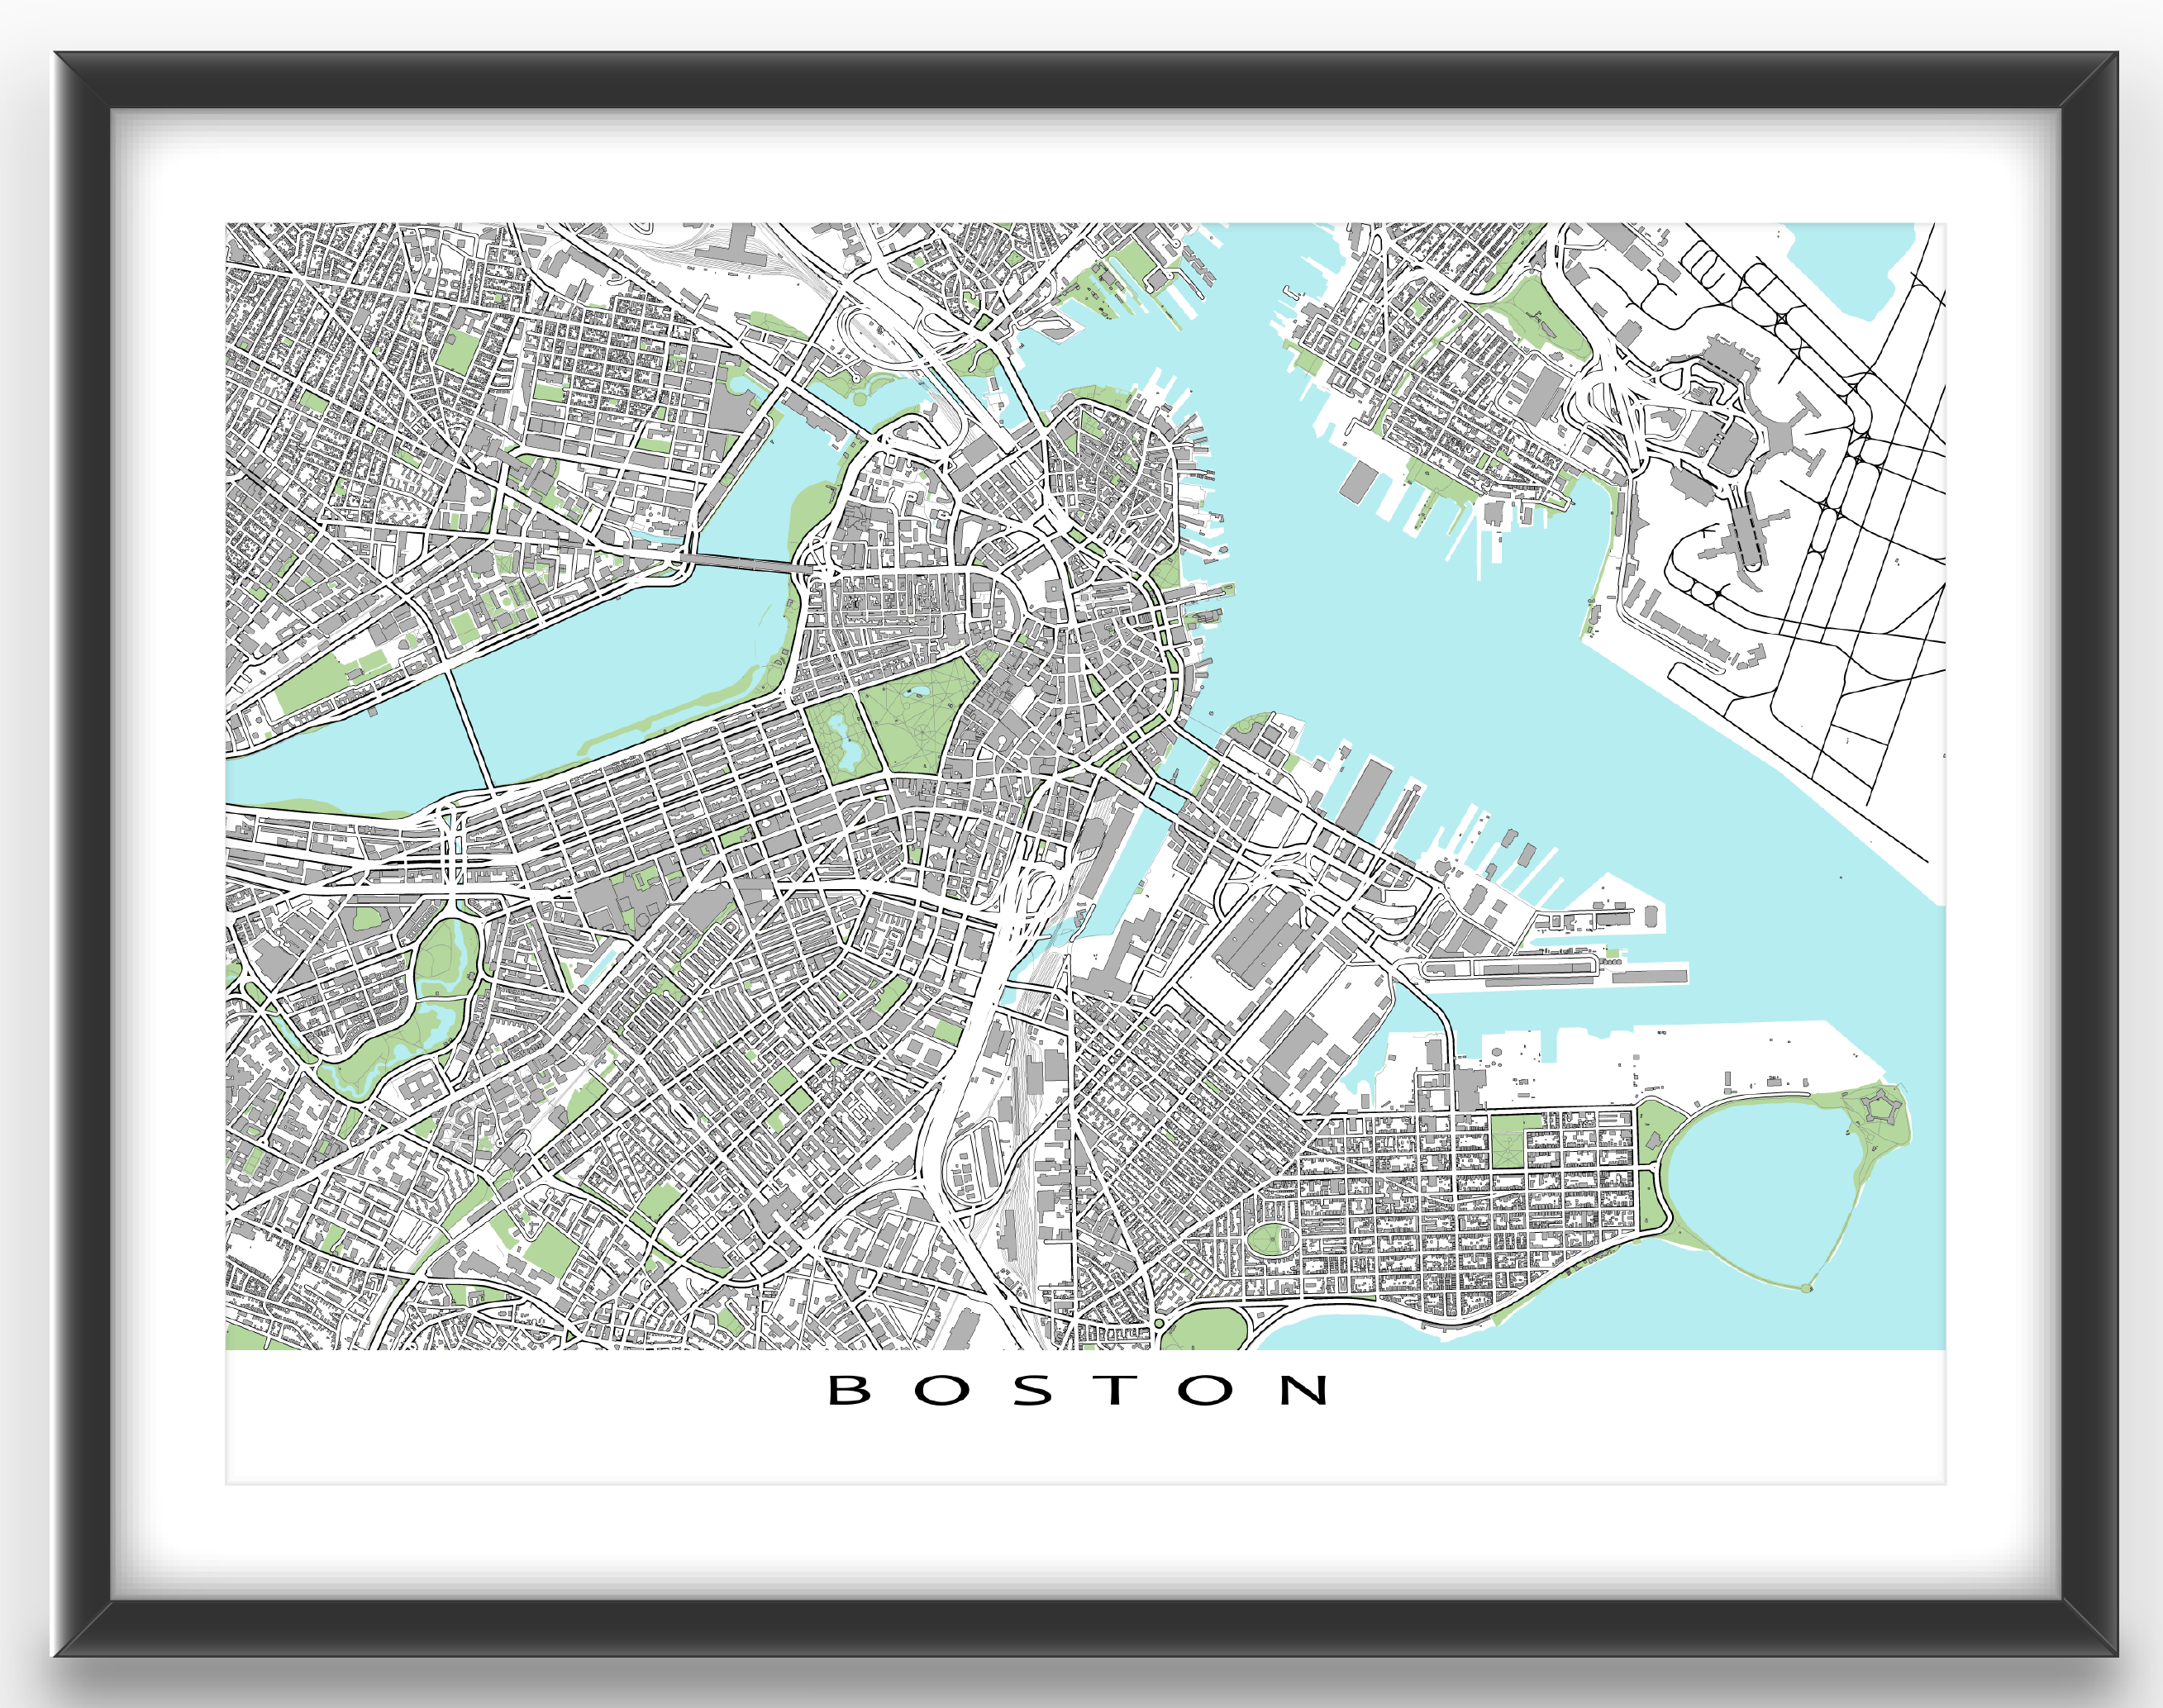 oston map print featuring the fantastic city of Boston